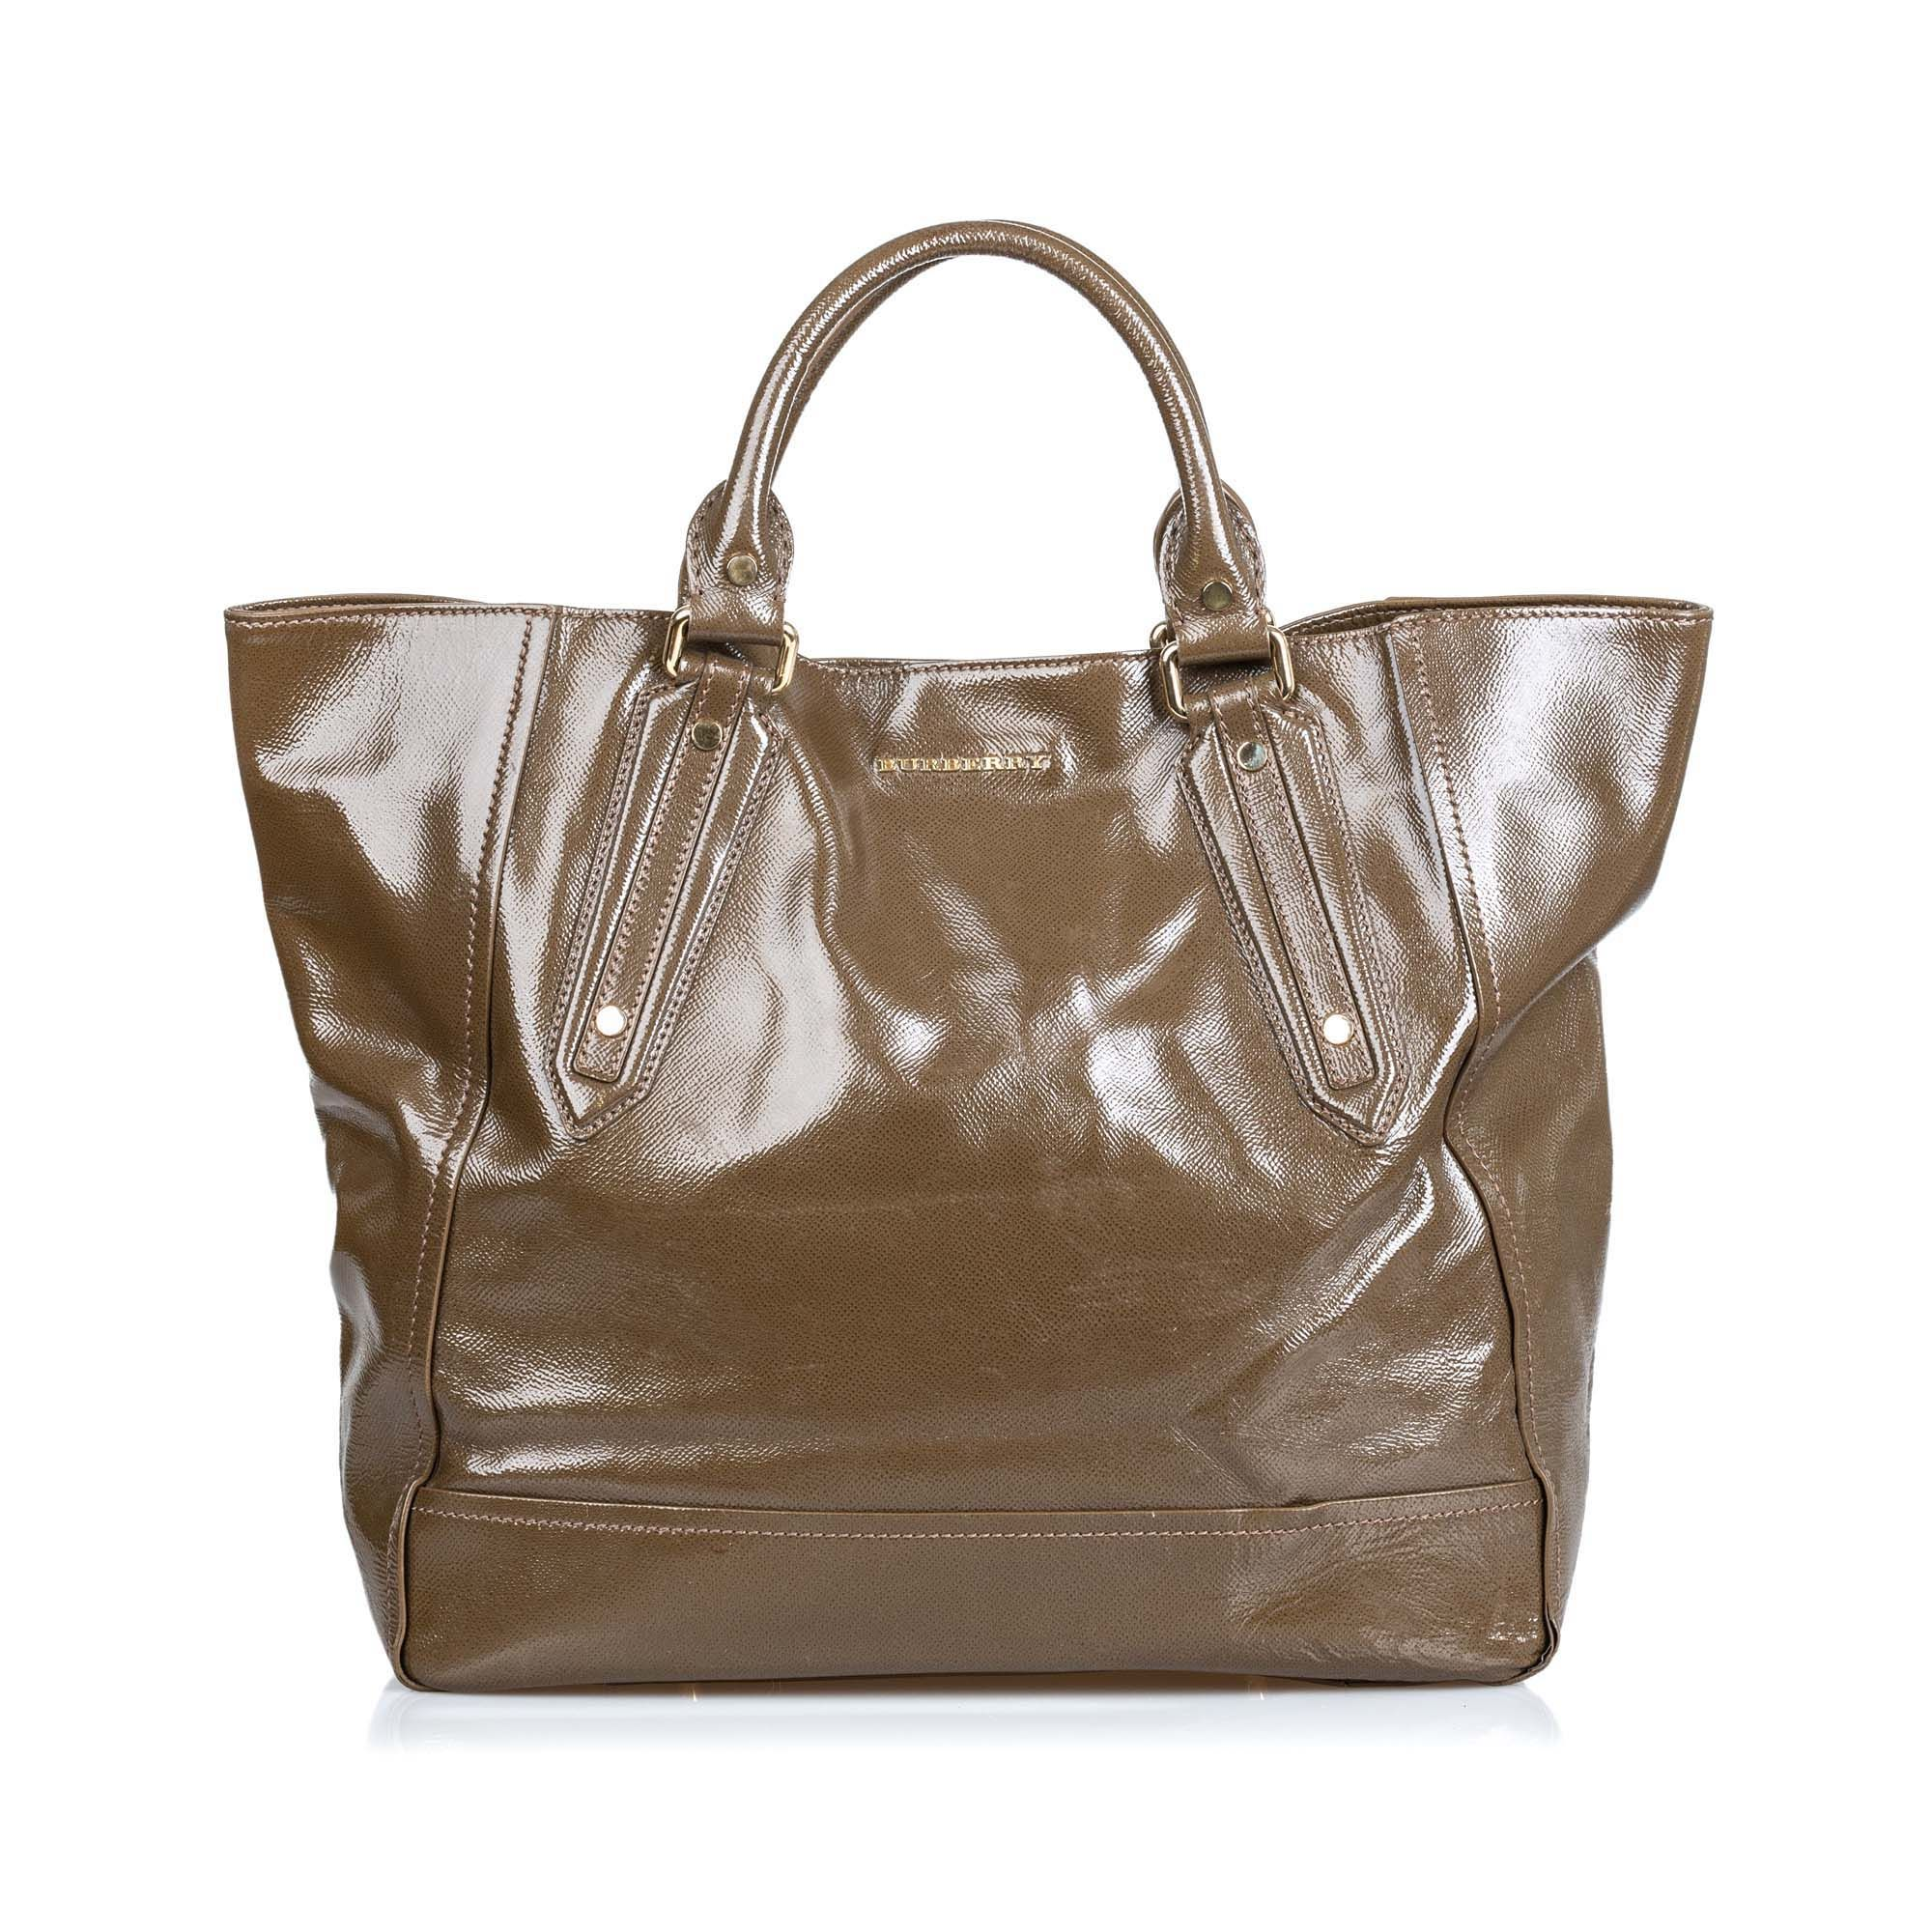 Vintage Burberry Patent Leather Somerford Tote Bag Brown